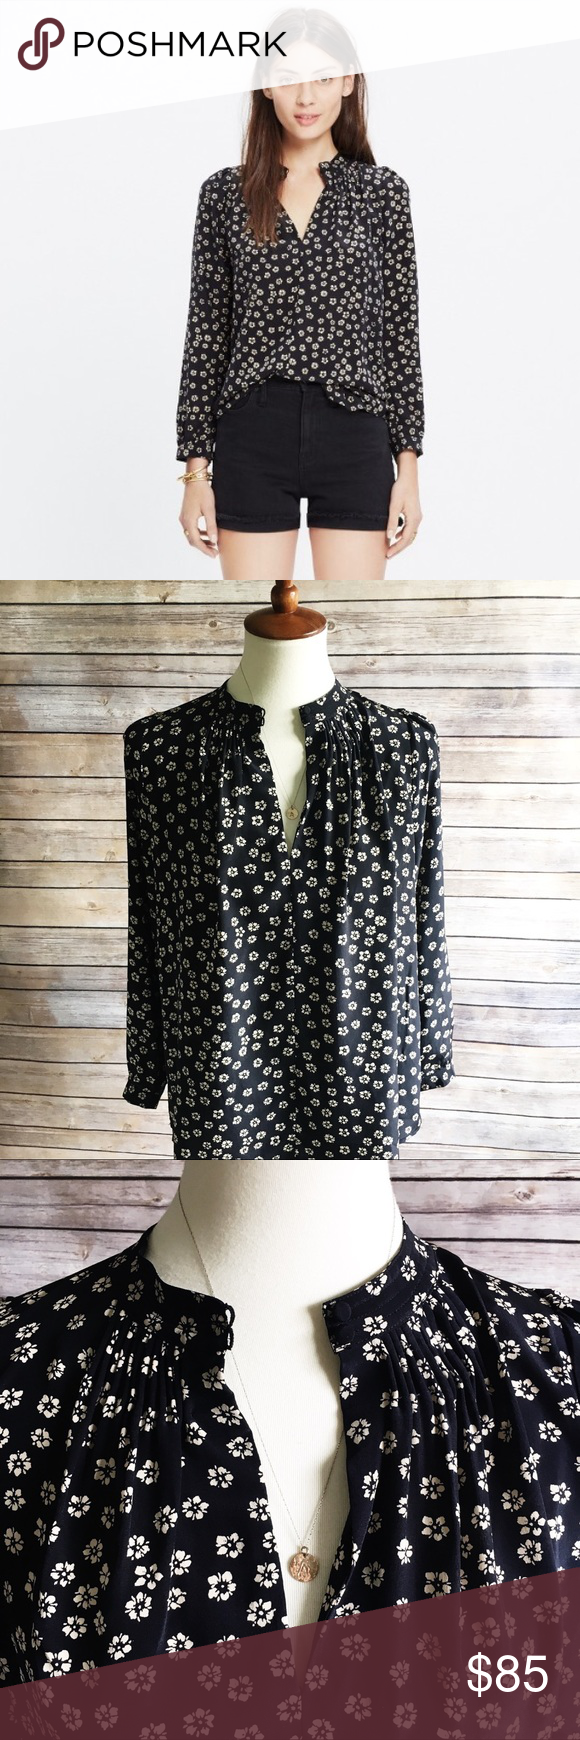 f5a2b285918e2d NWT Madewell Silk Memory Blouse in Stencil Blossom An effortless silk shirt  with hand-stitched smocked details. The subtle keyhole neckline makes this  one ...